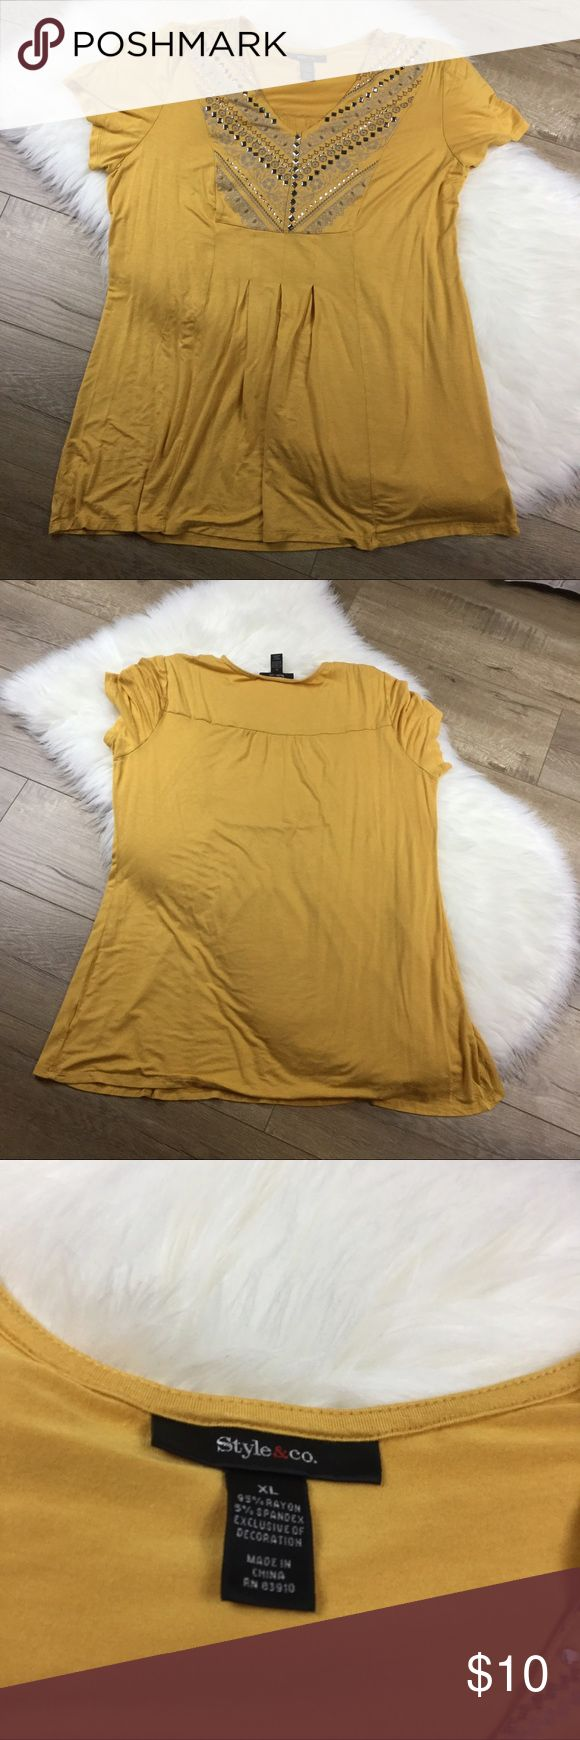 Style & Co em blushed short sleeve top Golden yellow short sleeve shirt from style & co. Size XL, additional measurements available in photo. Does have some small holes, one was repaired, on the bottom one upper body. All pictured. Has embellished neckline and pleading in the front. Save 20% when bundled. Style & Co Tops Tees - Short Sleeve